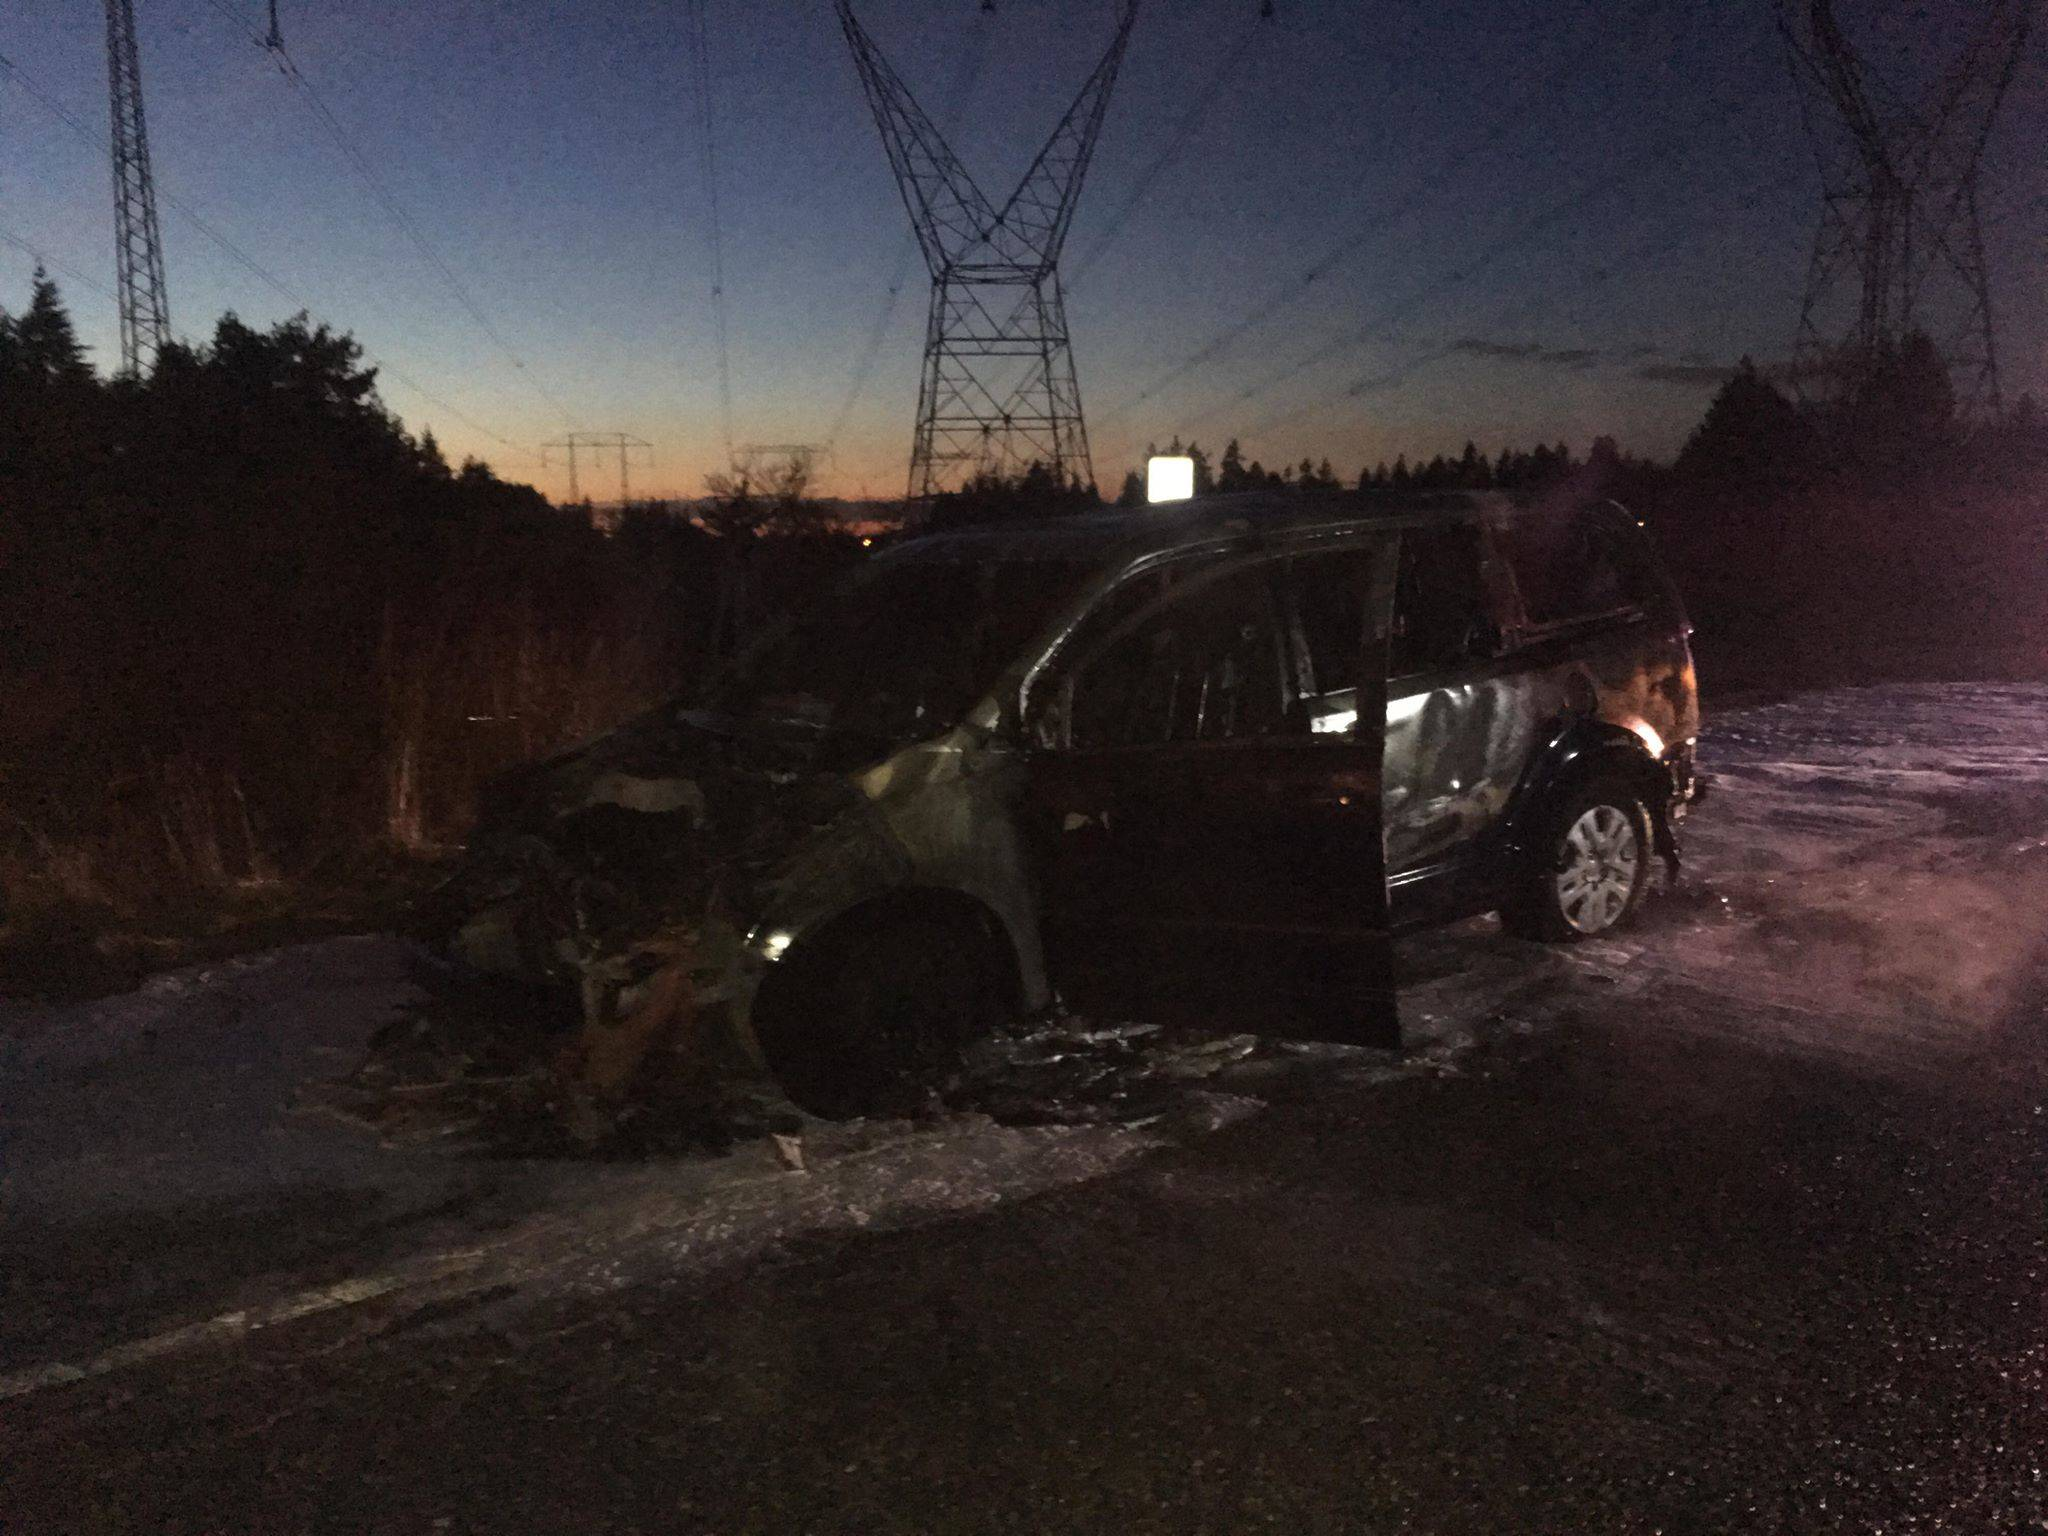 Nothing was left of the van that caught fire Tuesday. Submitted photo